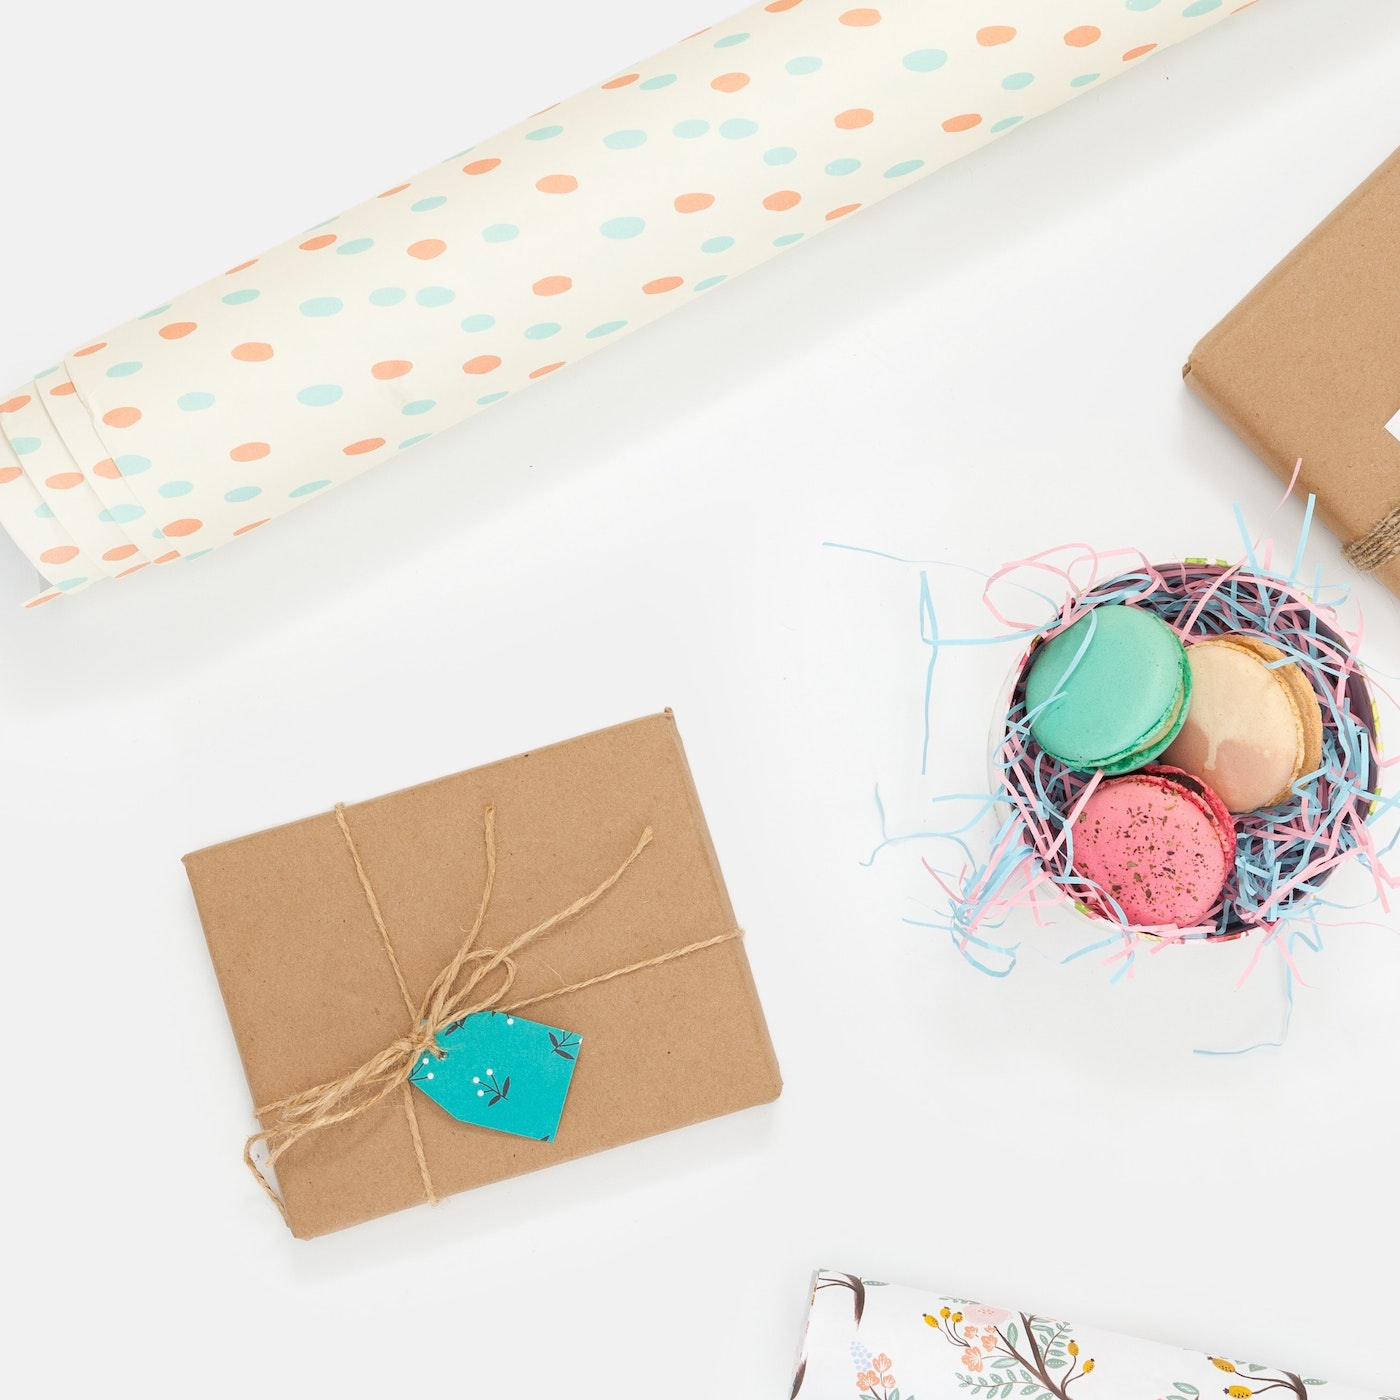 How To Phrase No Boxed Gifts In 4 Ways Amaliah